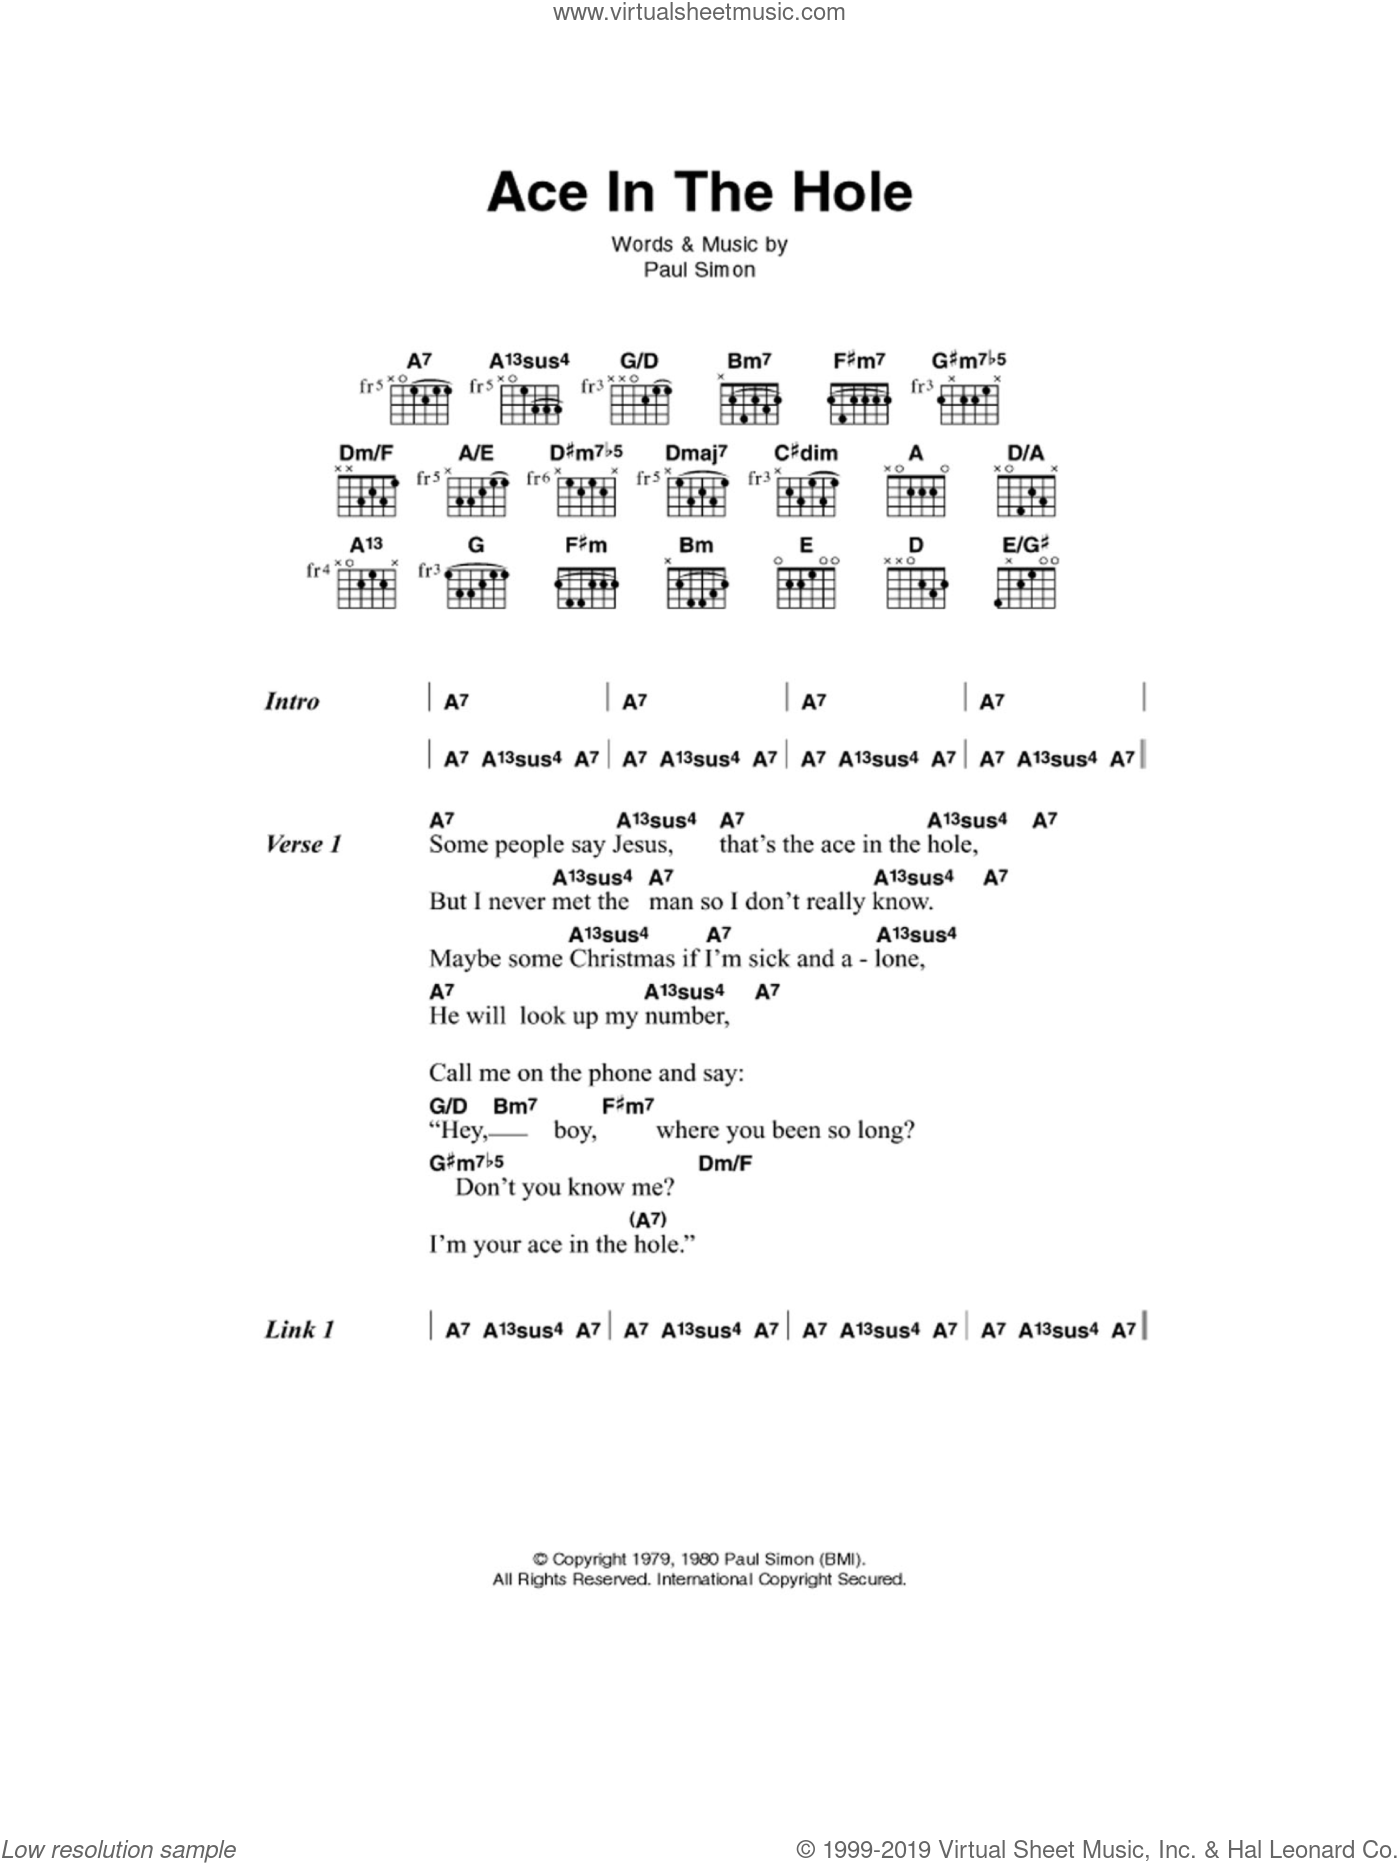 Ace In The Hole sheet music for guitar (chords) by Paul Simon